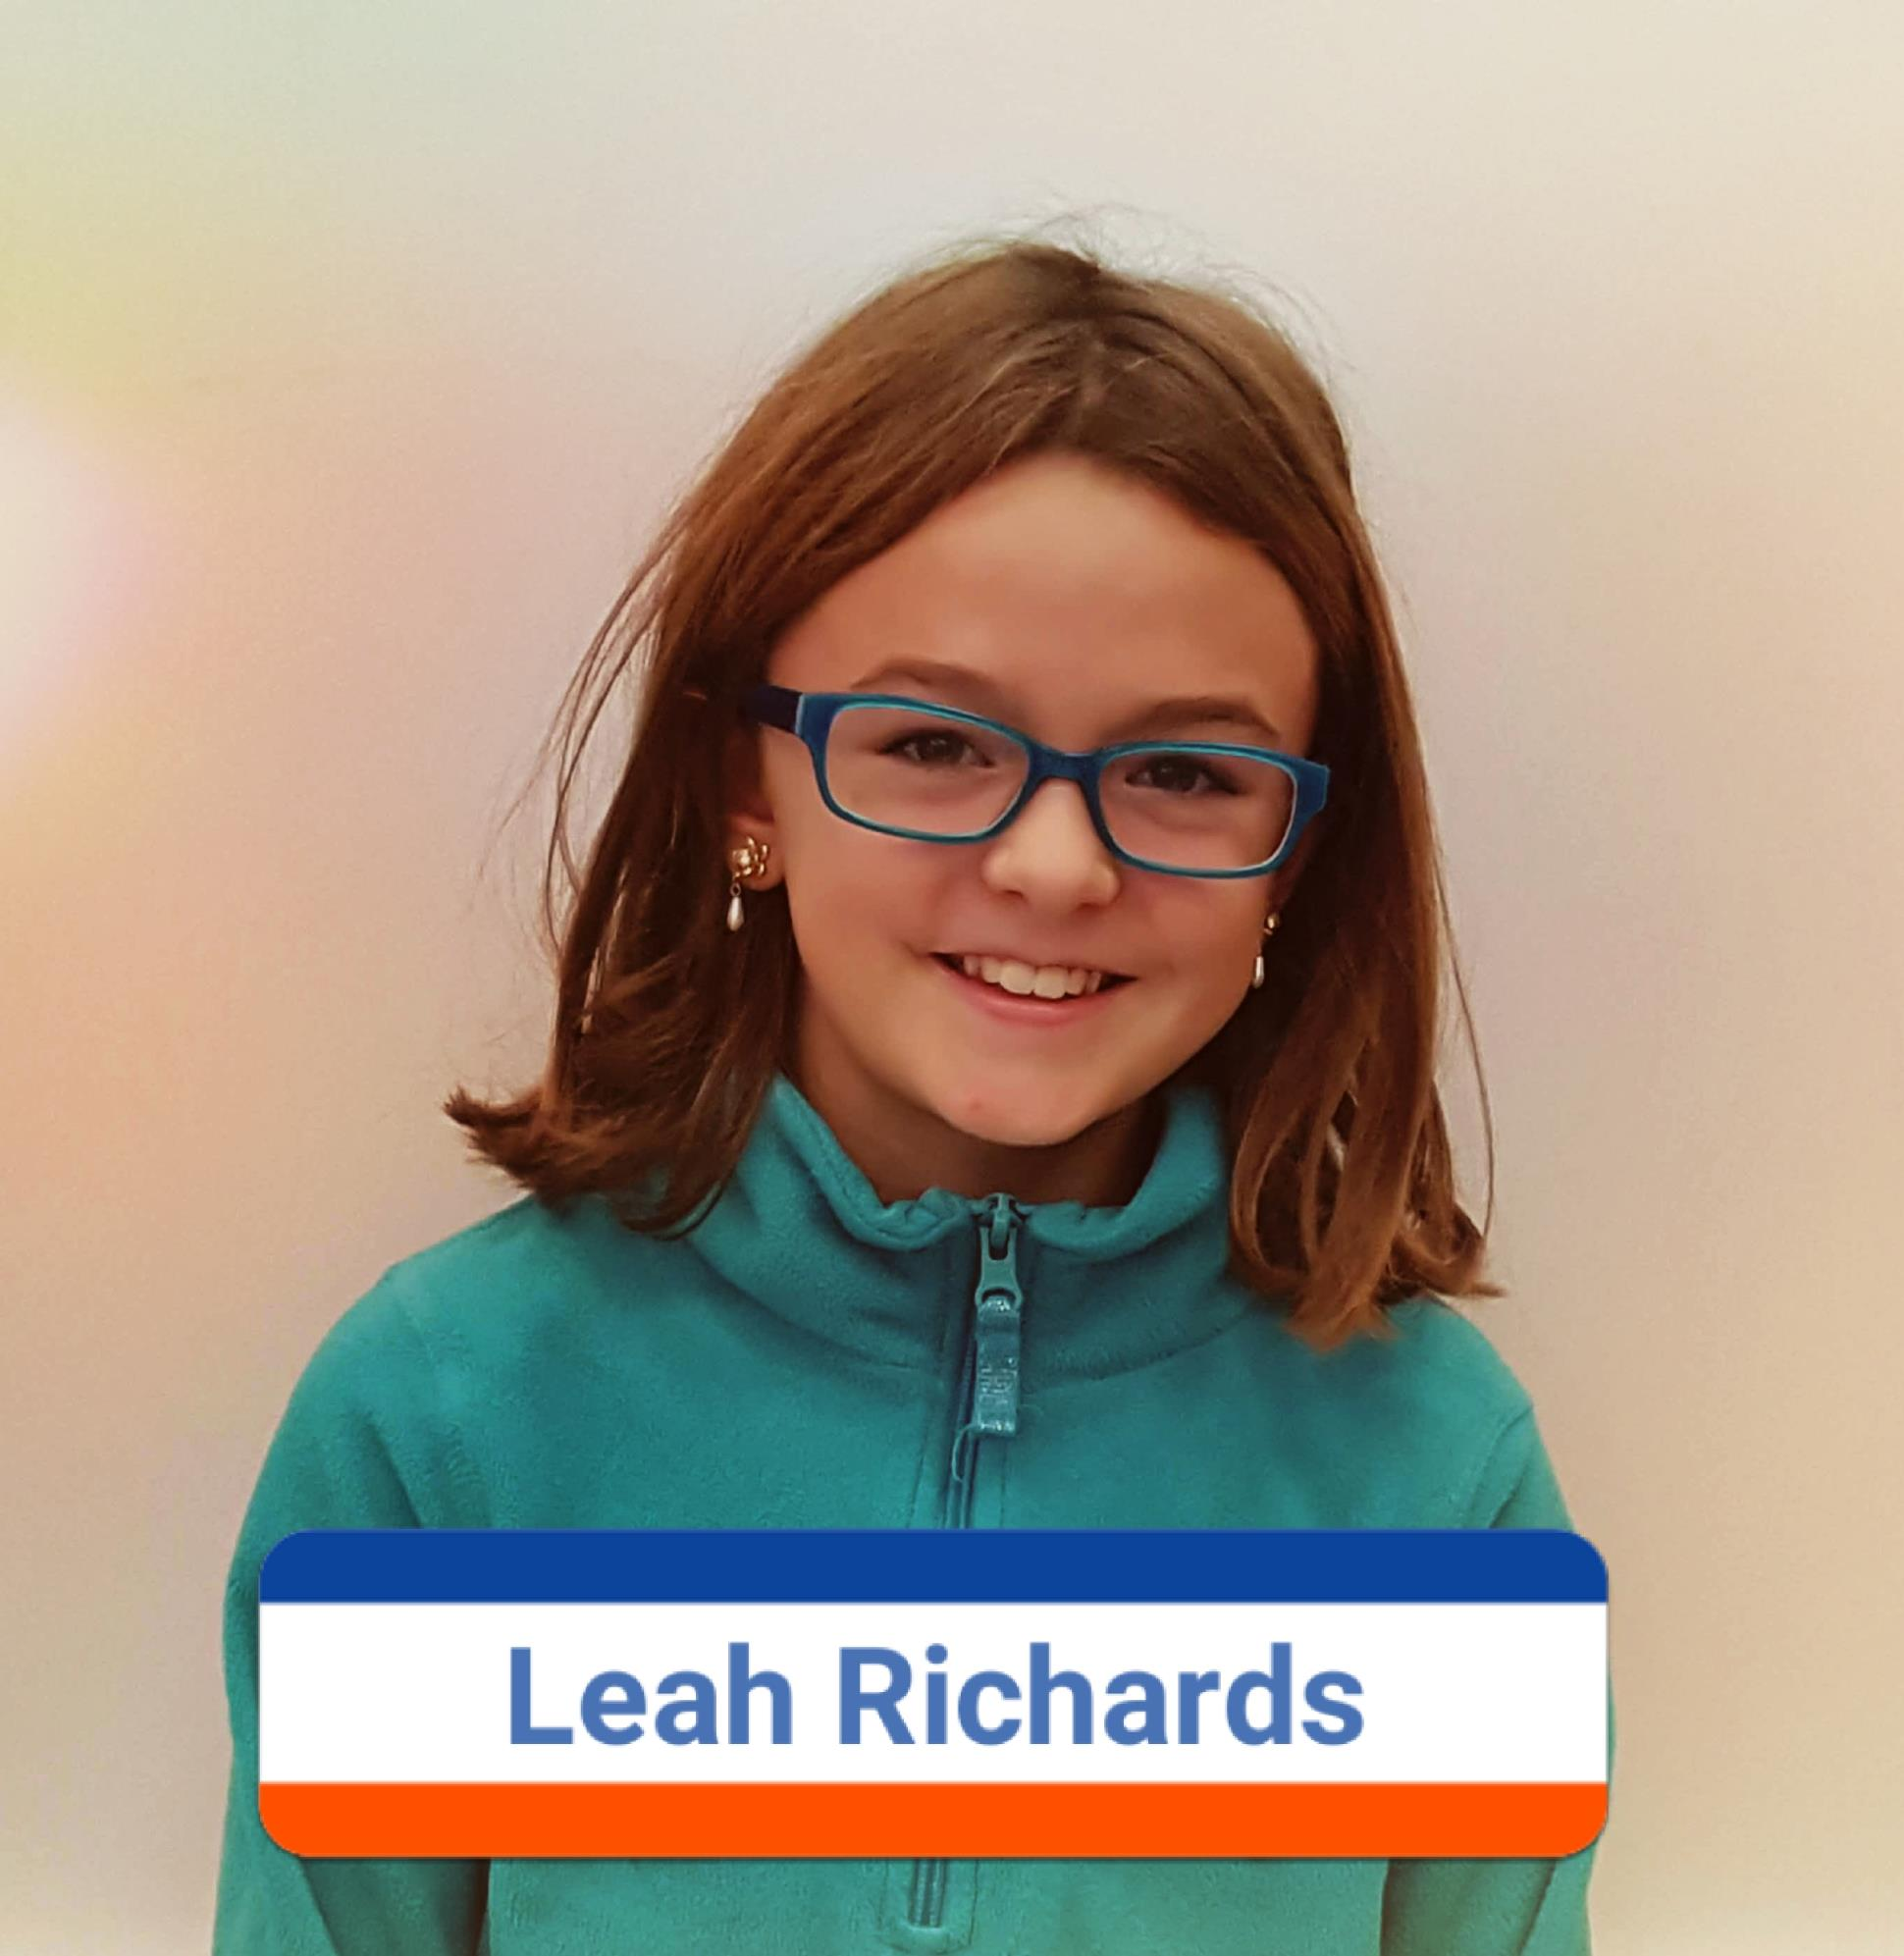 Leah Richards photo